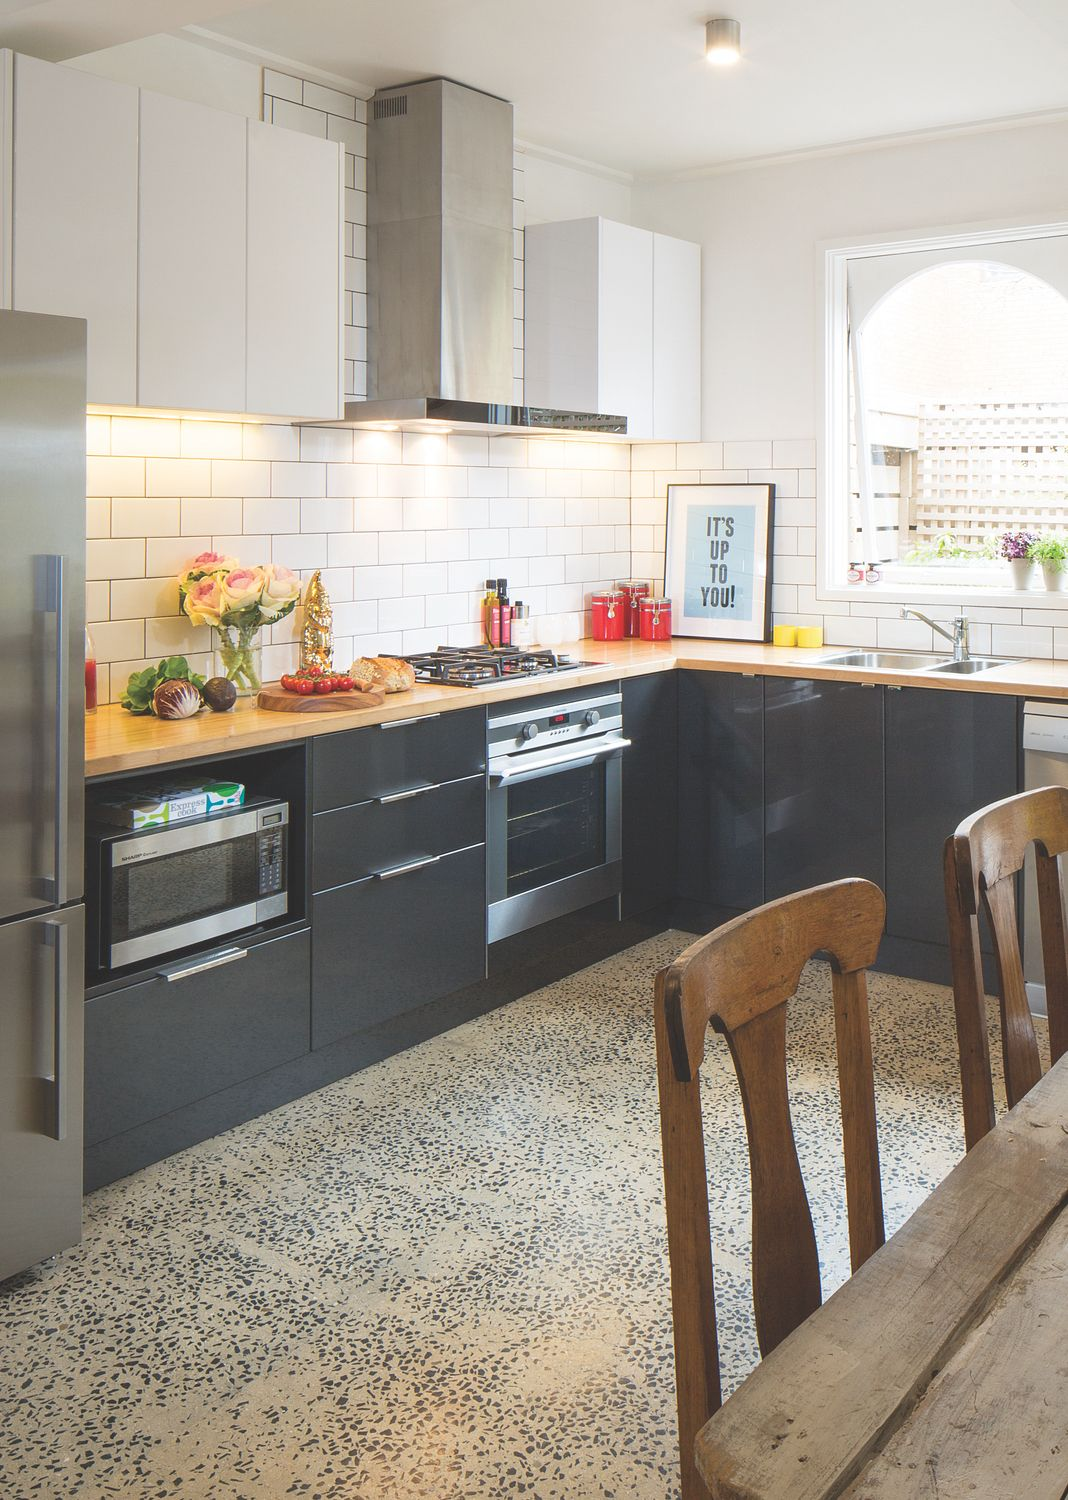 Flat Pack Kitchens >> Flat Pack Kitchens Gallery Bring It Together L Shaped Kitchen